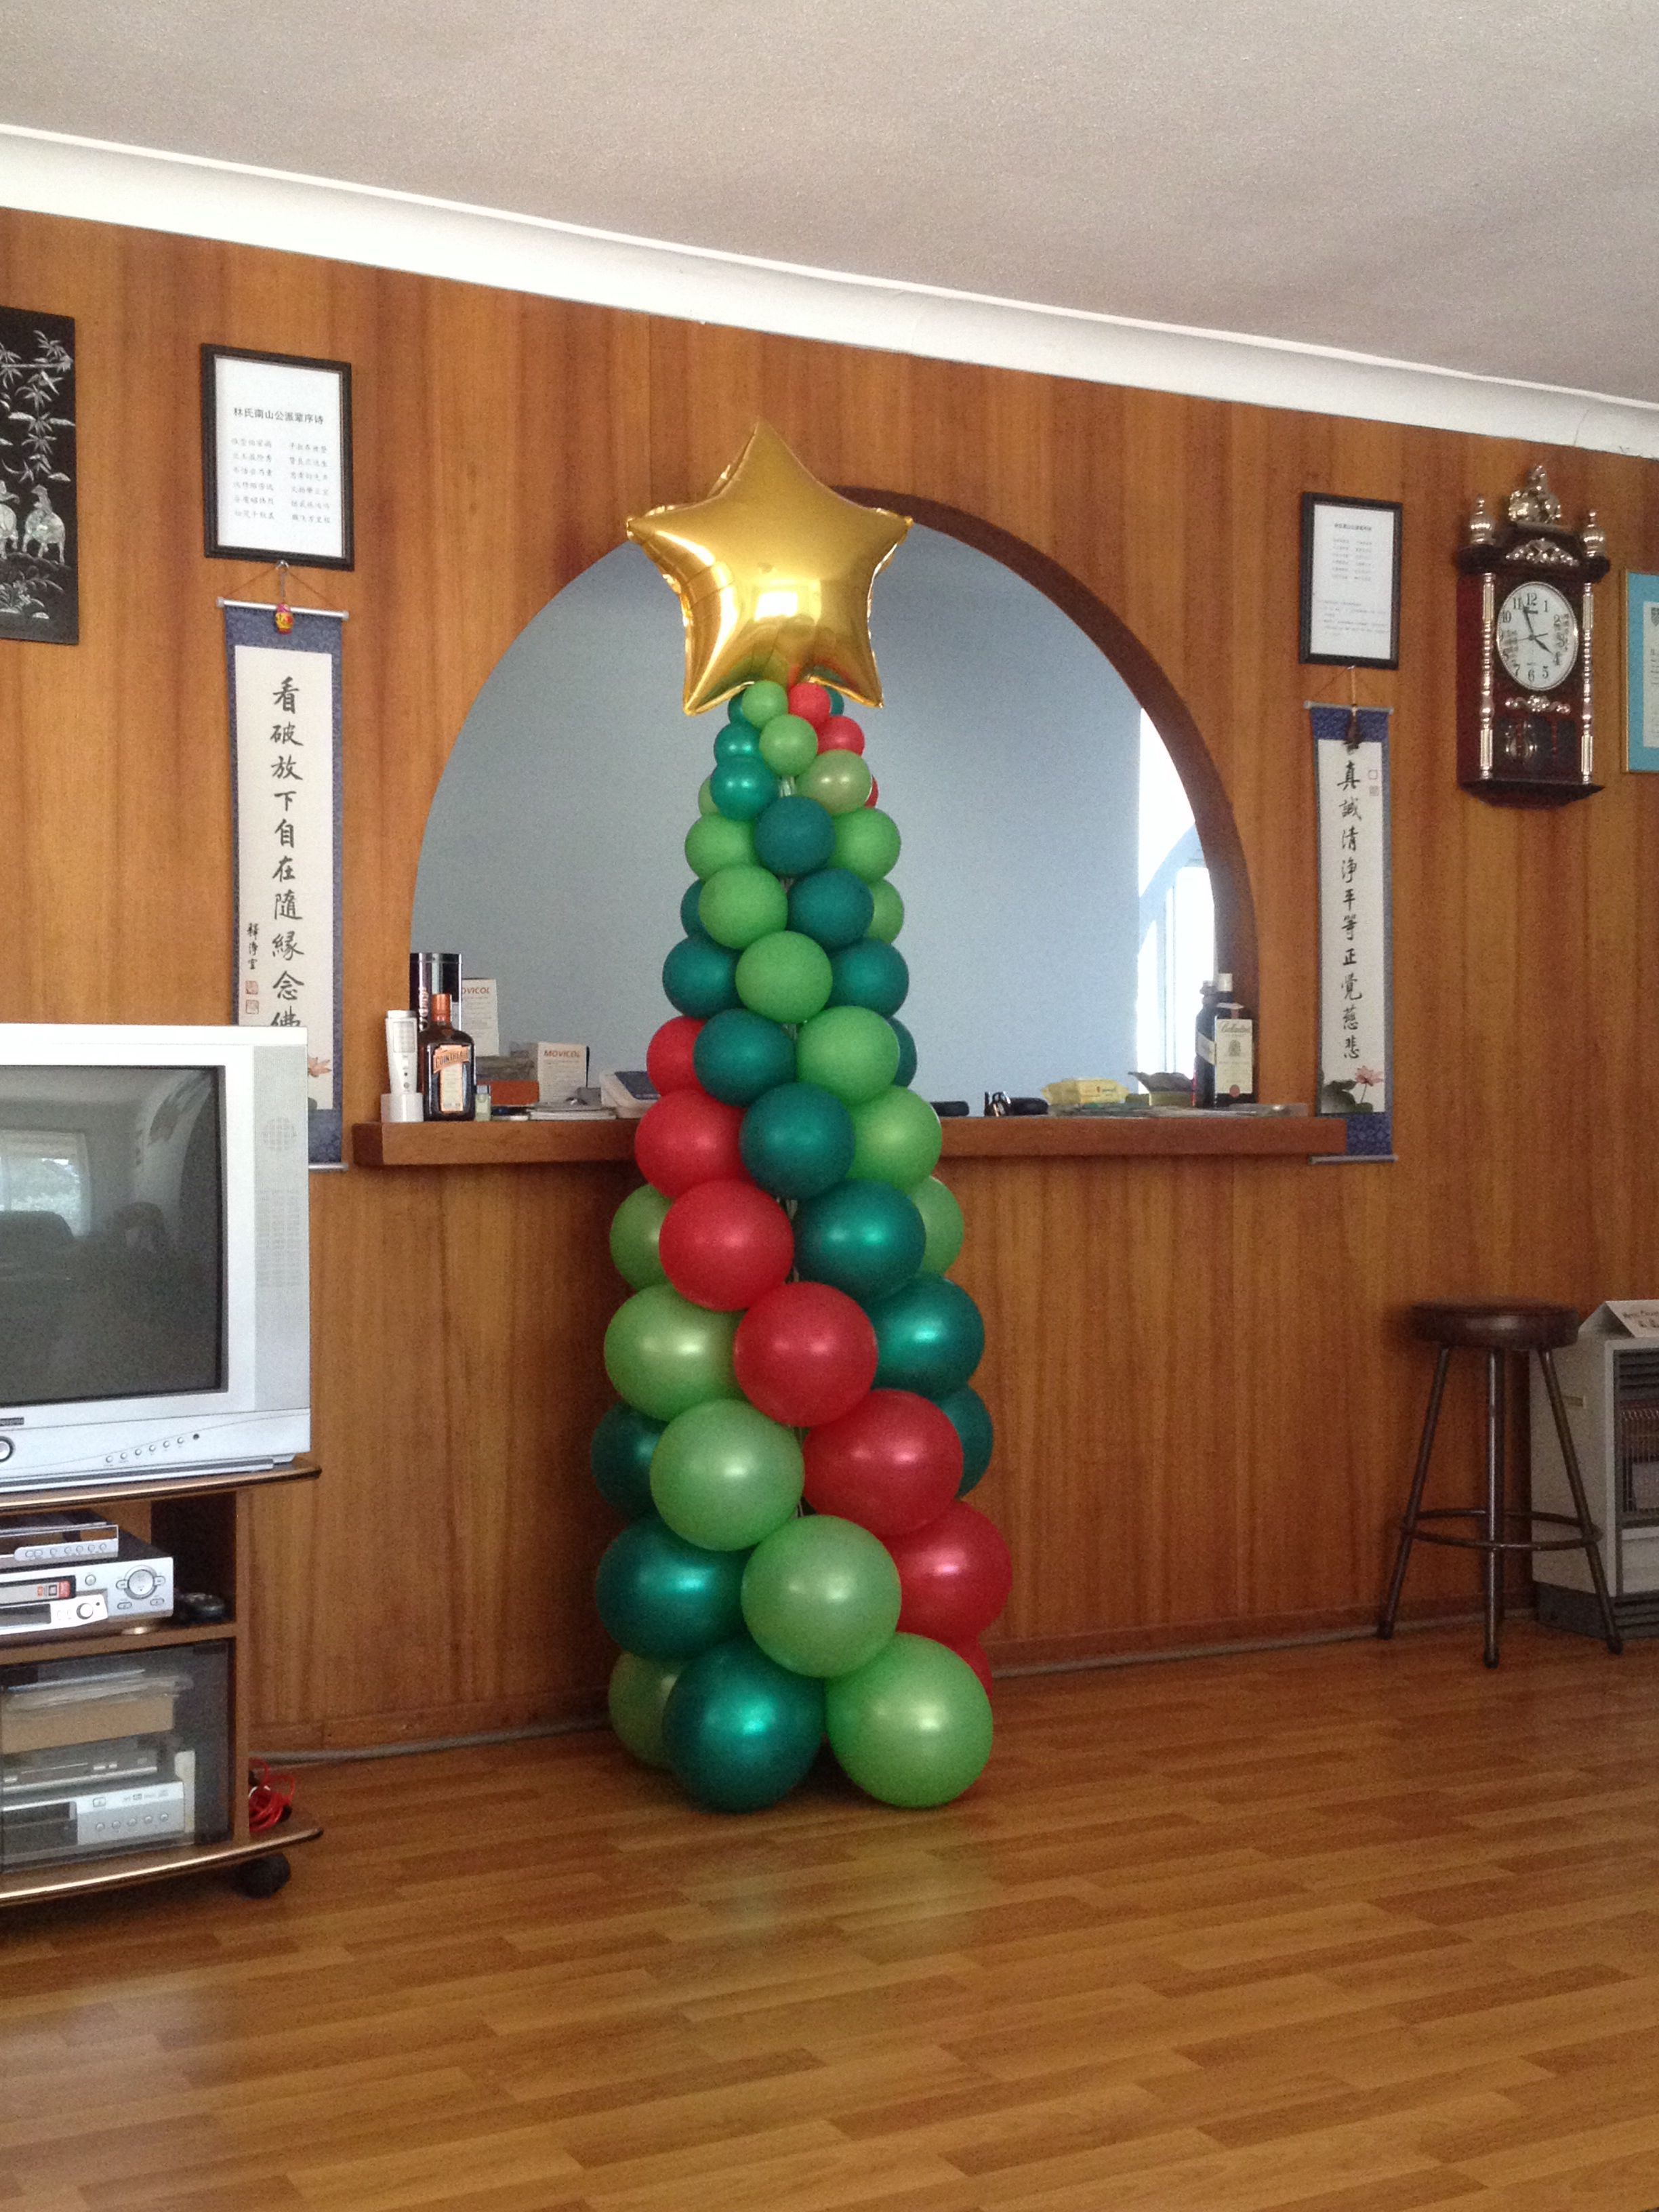 Christmas Tree Sculpture Brightens Up An Otherwise Ordinary Room